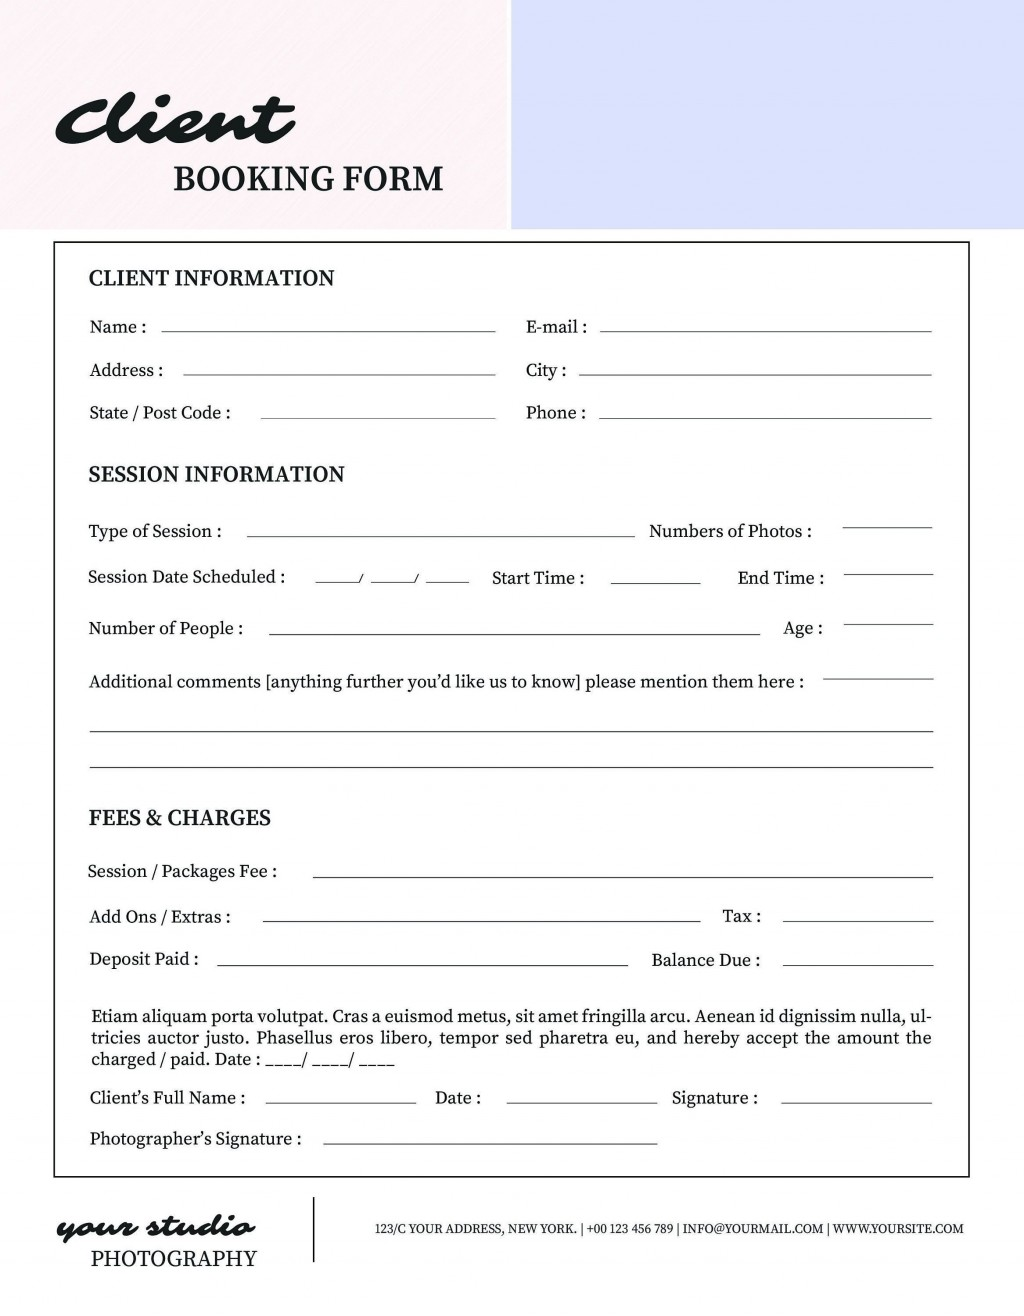 001 Formidable New Client Form Template Design  Accounting Free Customer PdfLarge